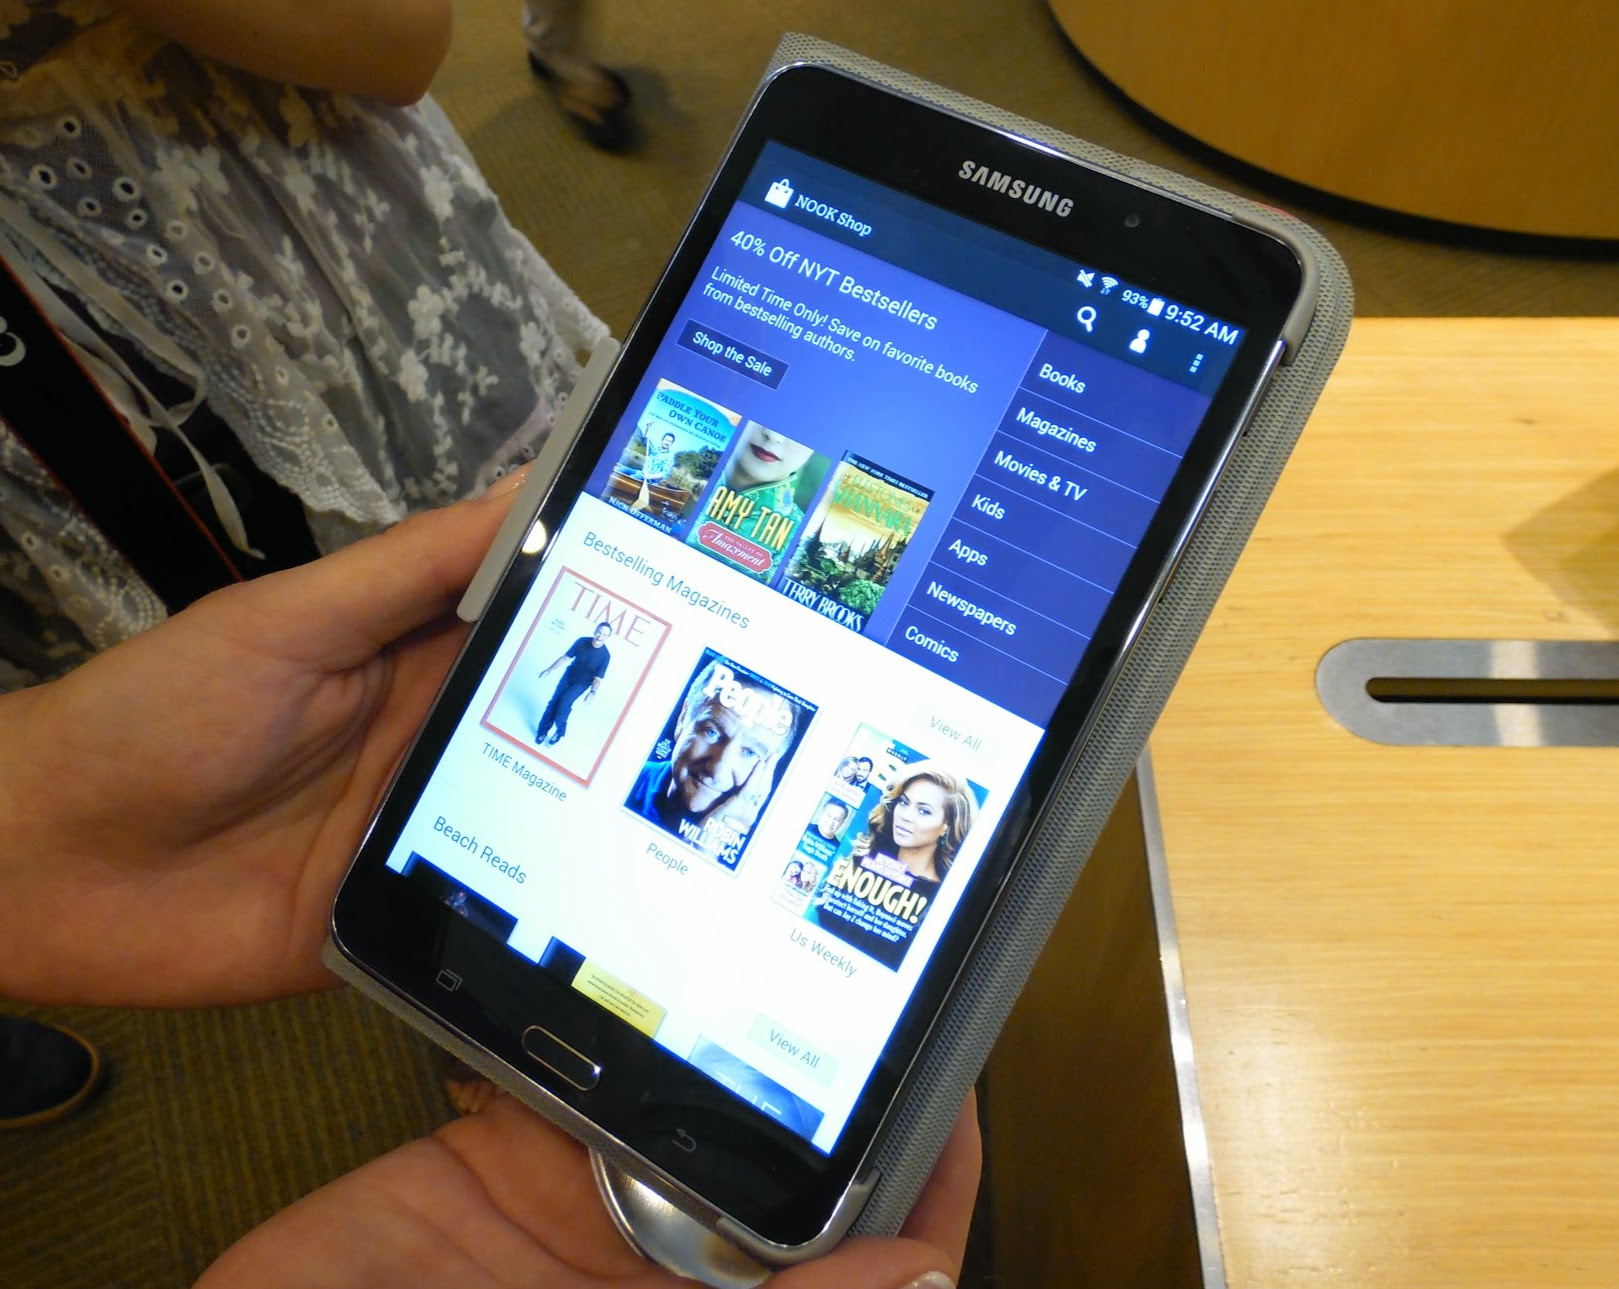 Hands on samsung galaxy tab 4 nook liliputing for Samsung galaxy 4 tablet